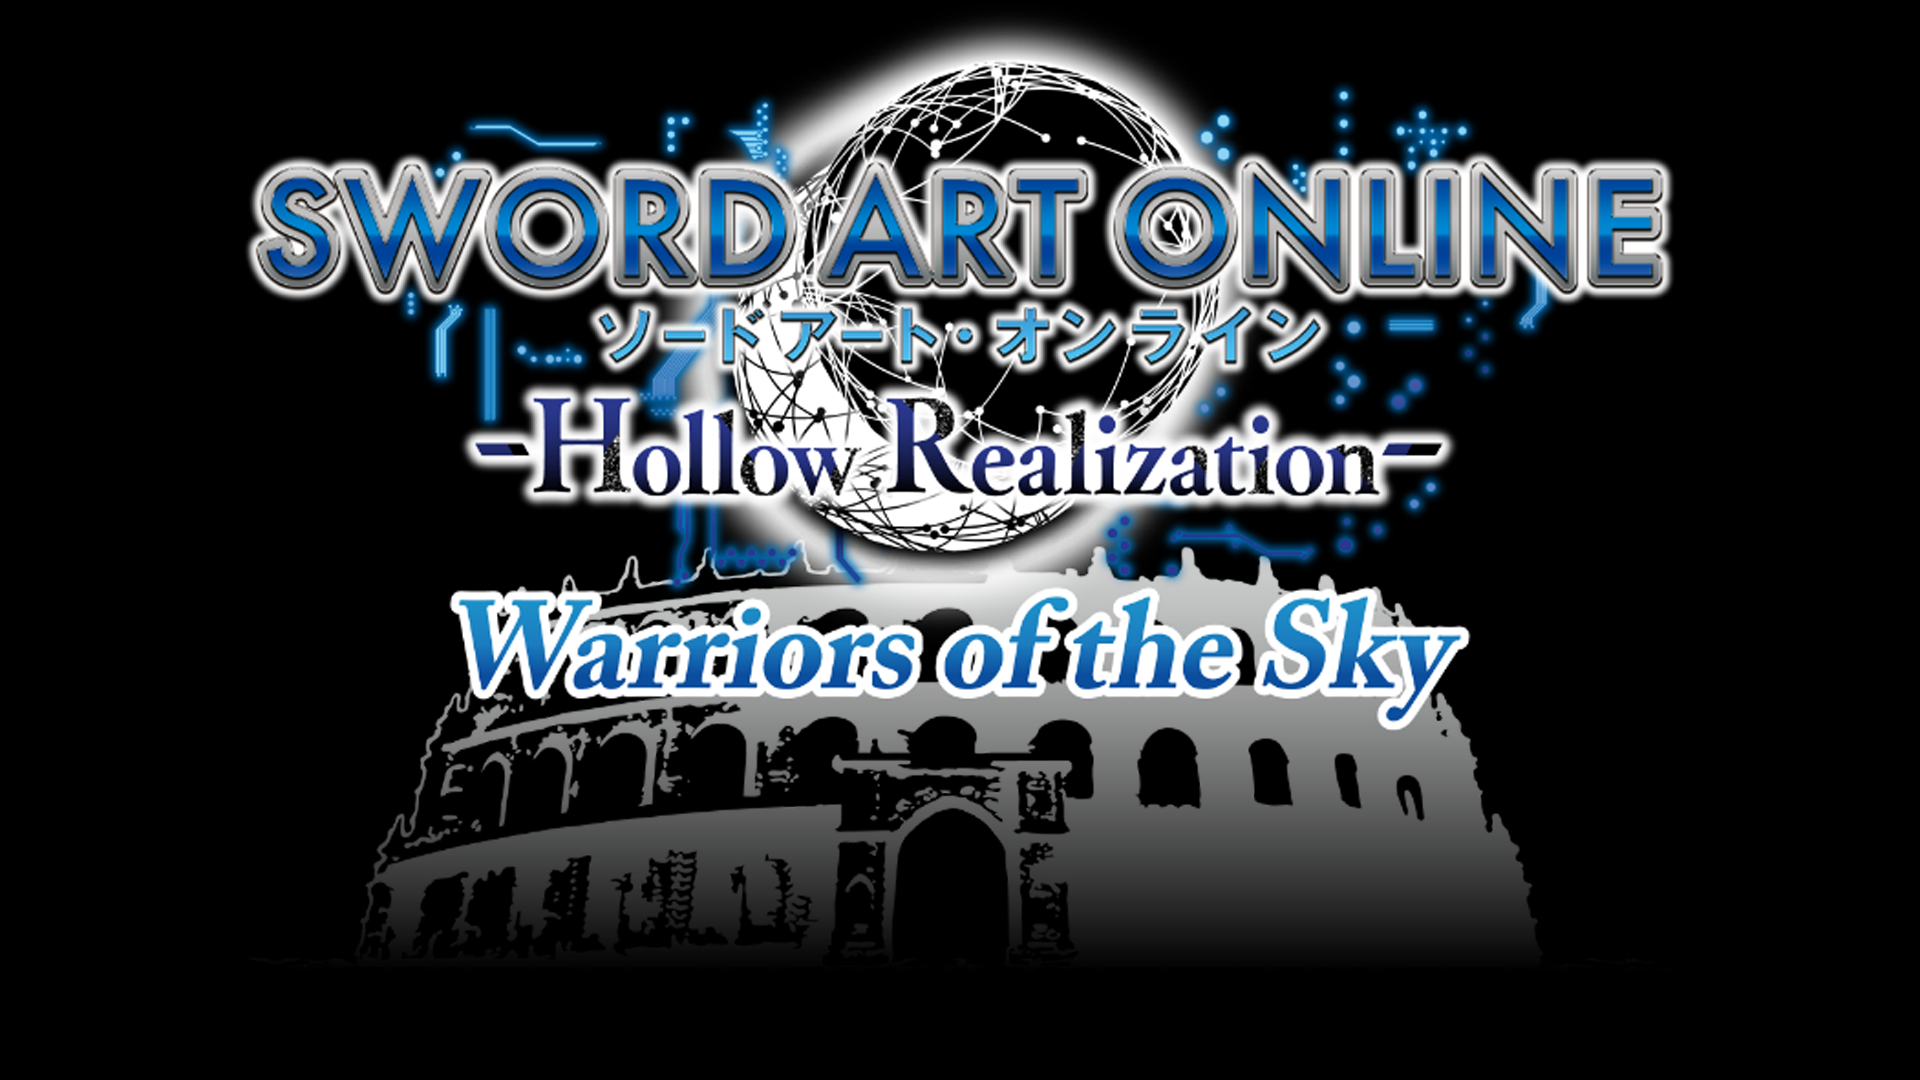 Sword Art Online Hollow Realization - Warriors of the Sky